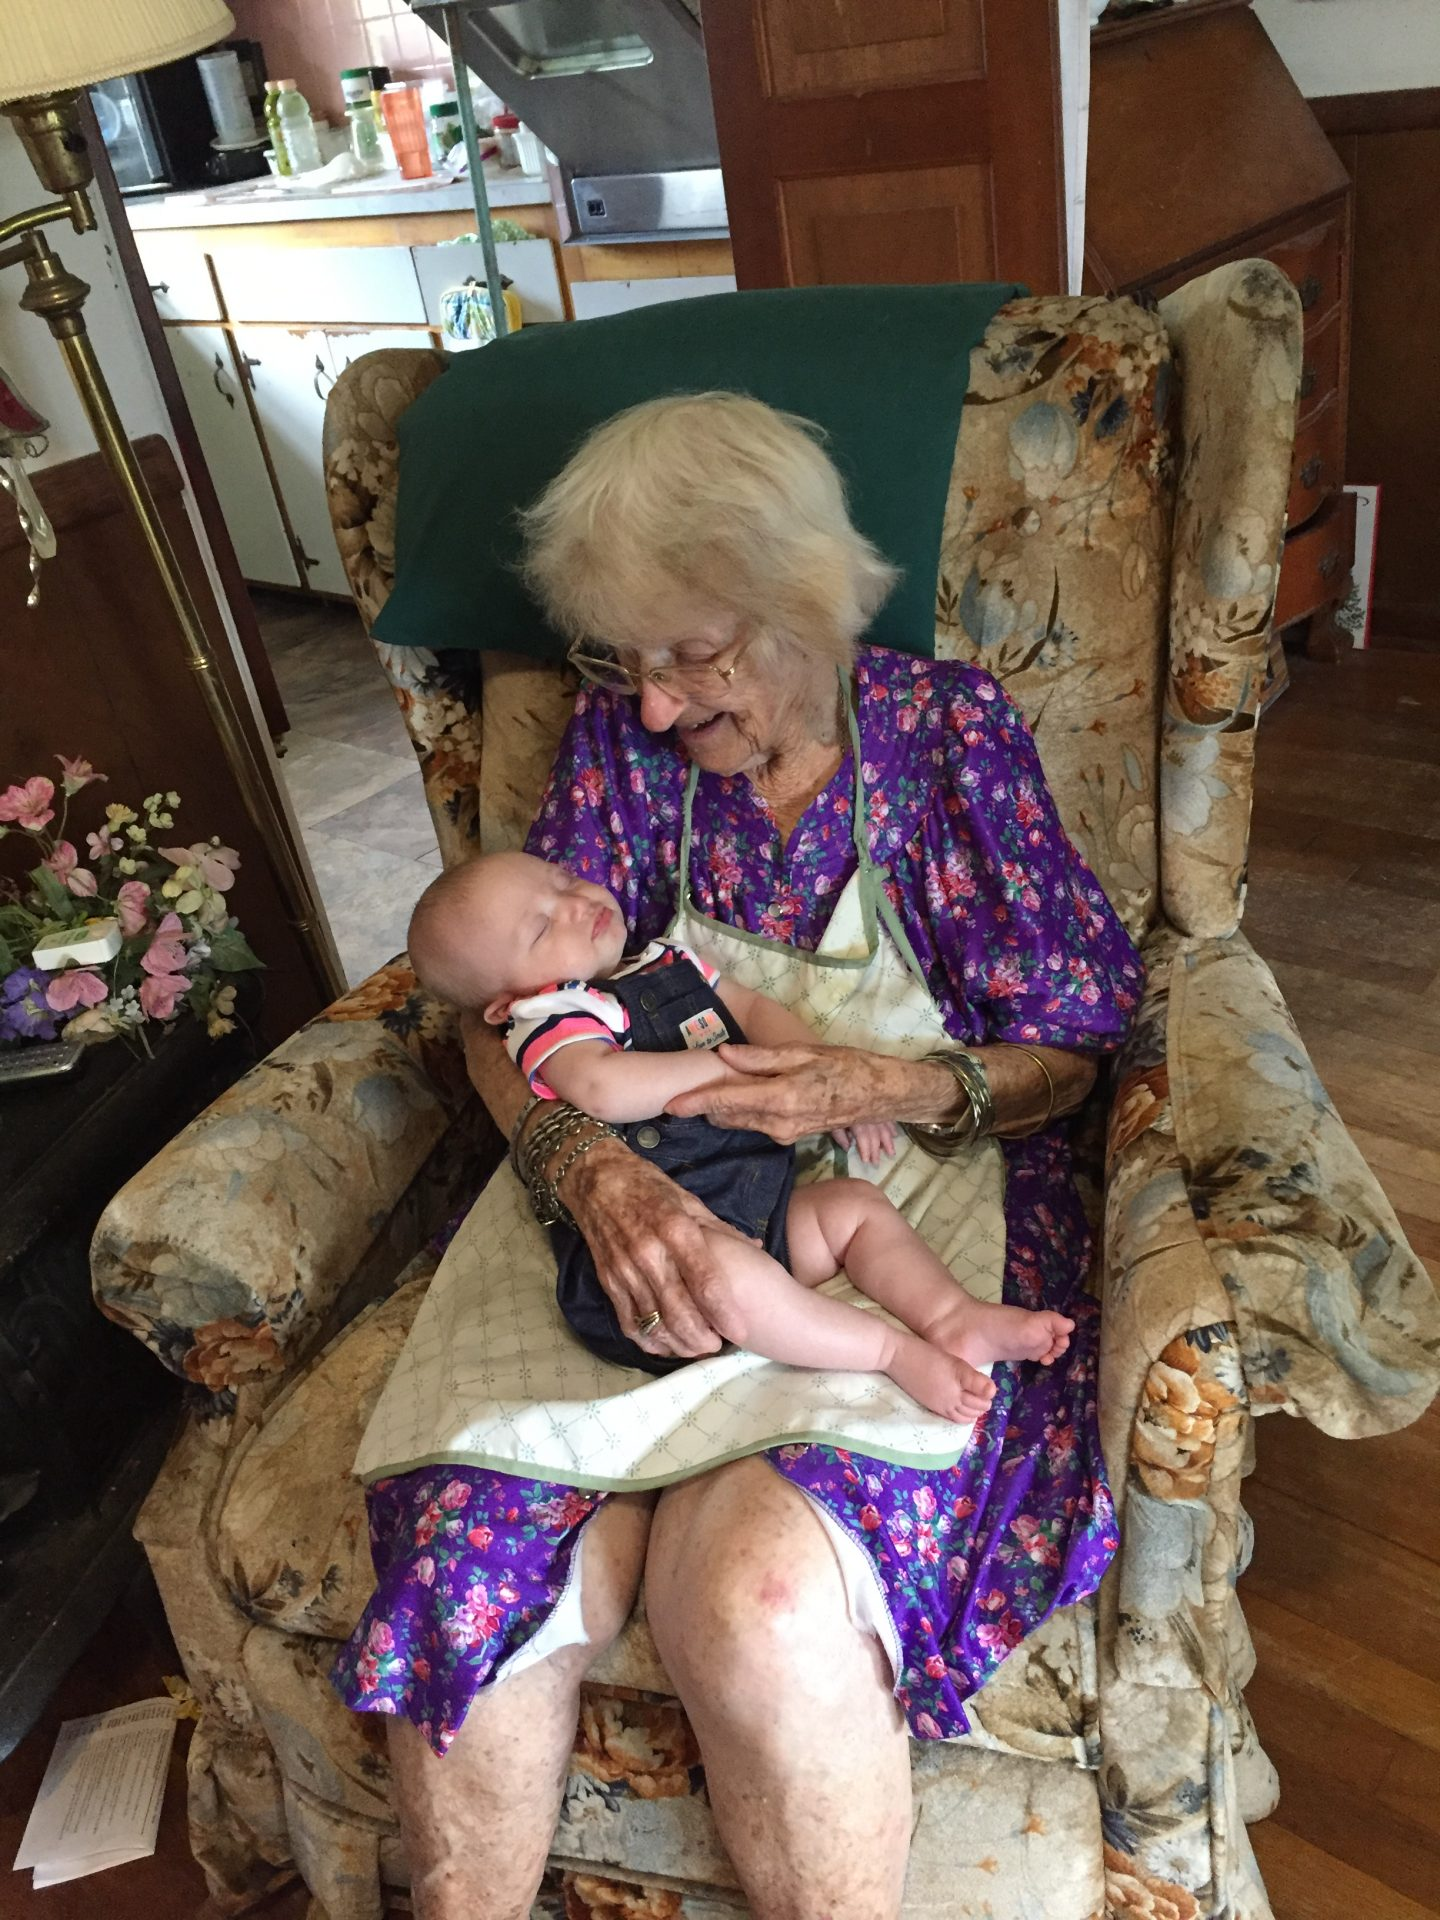 Mrs Graham (with our 1st granddaughter) our great faithful friend. We are going to miss you so much. I know your husband and babies were so excited when you arrived in heaven. We love you so much!<br />